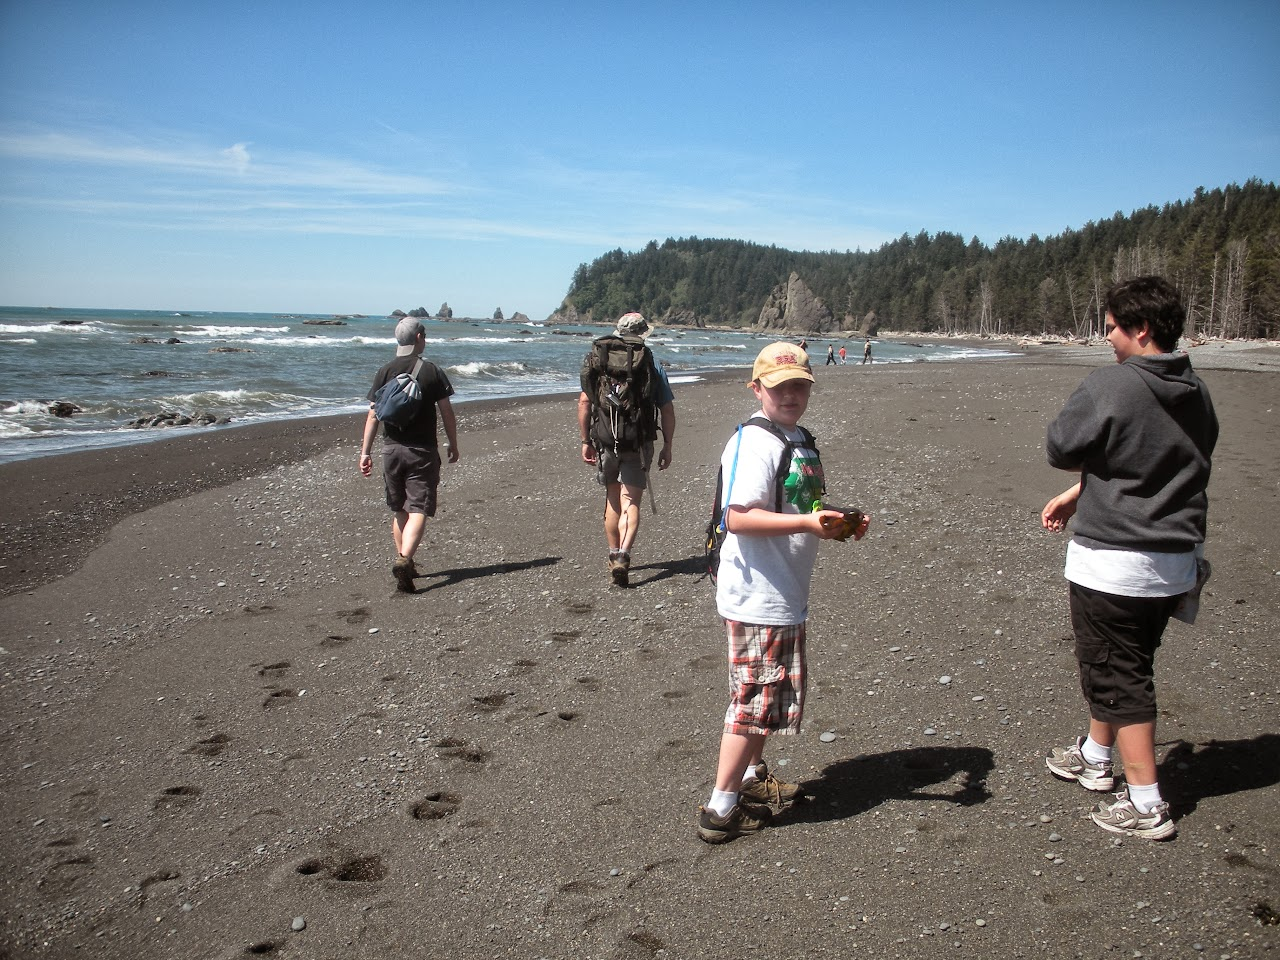 Rialto Beach May 2013 - DSCN0196.JPG